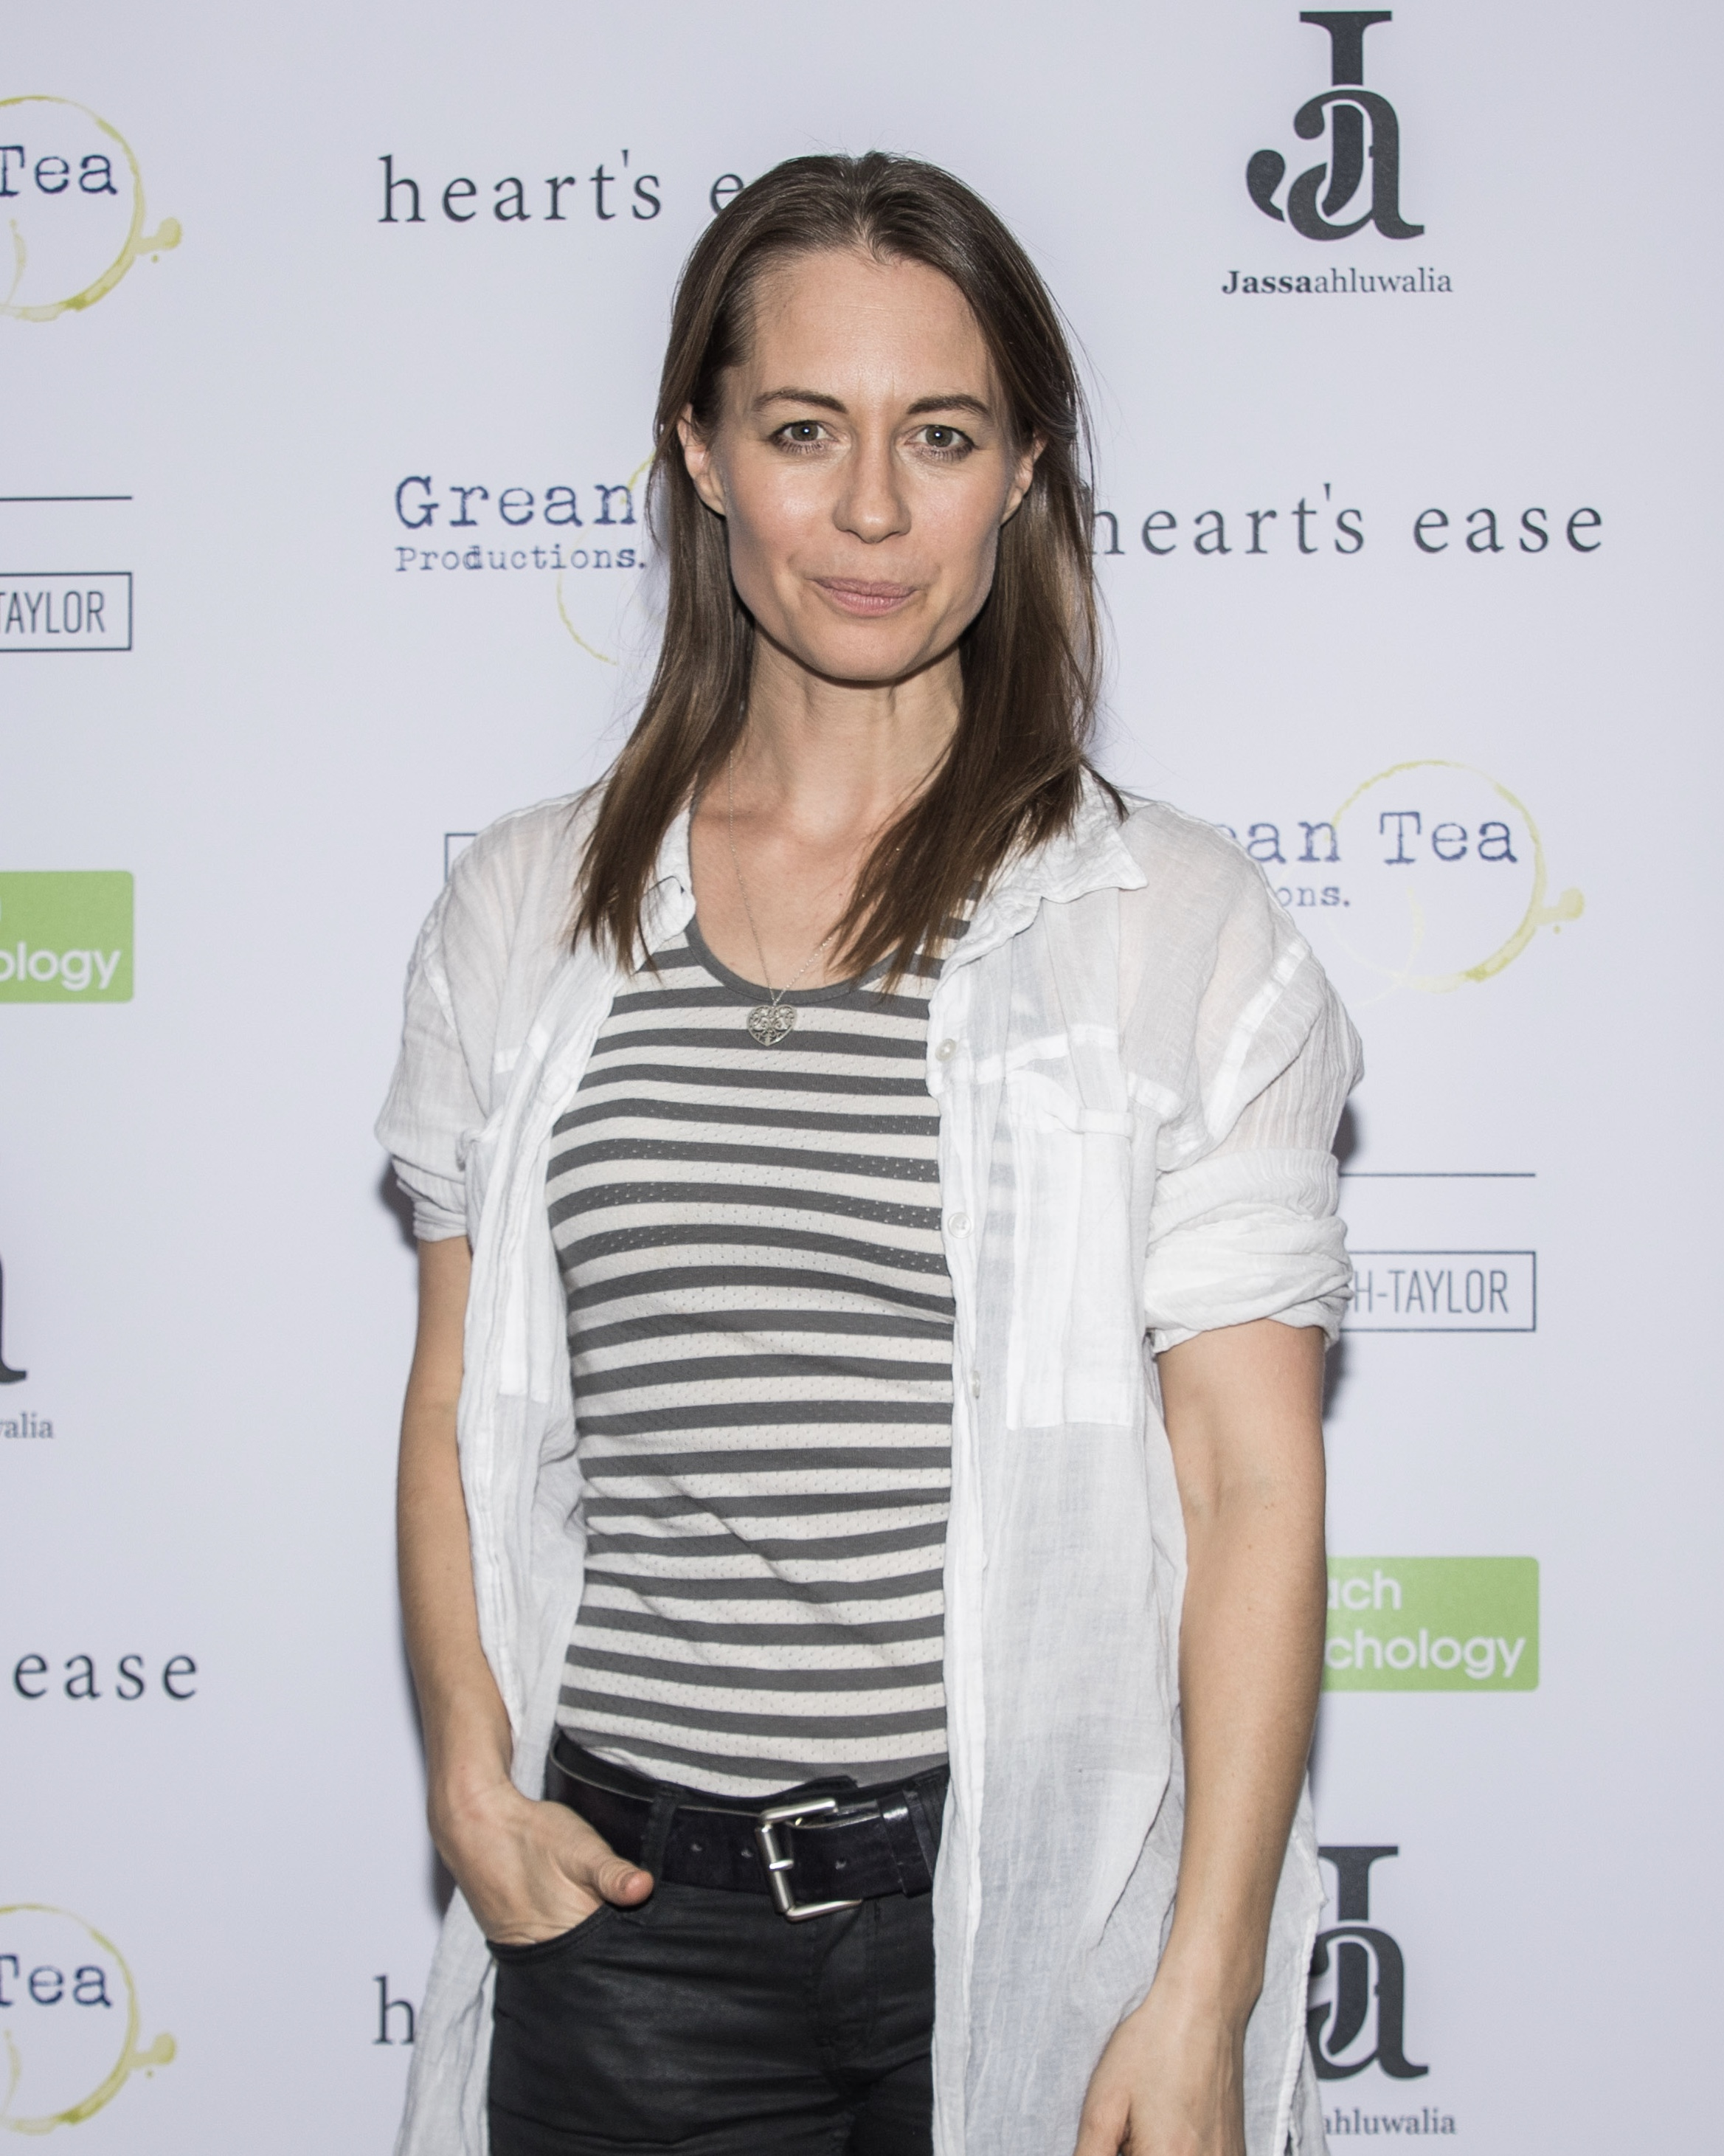 Kezia Burrows attends the cast and crew screening of Heart's Ease.